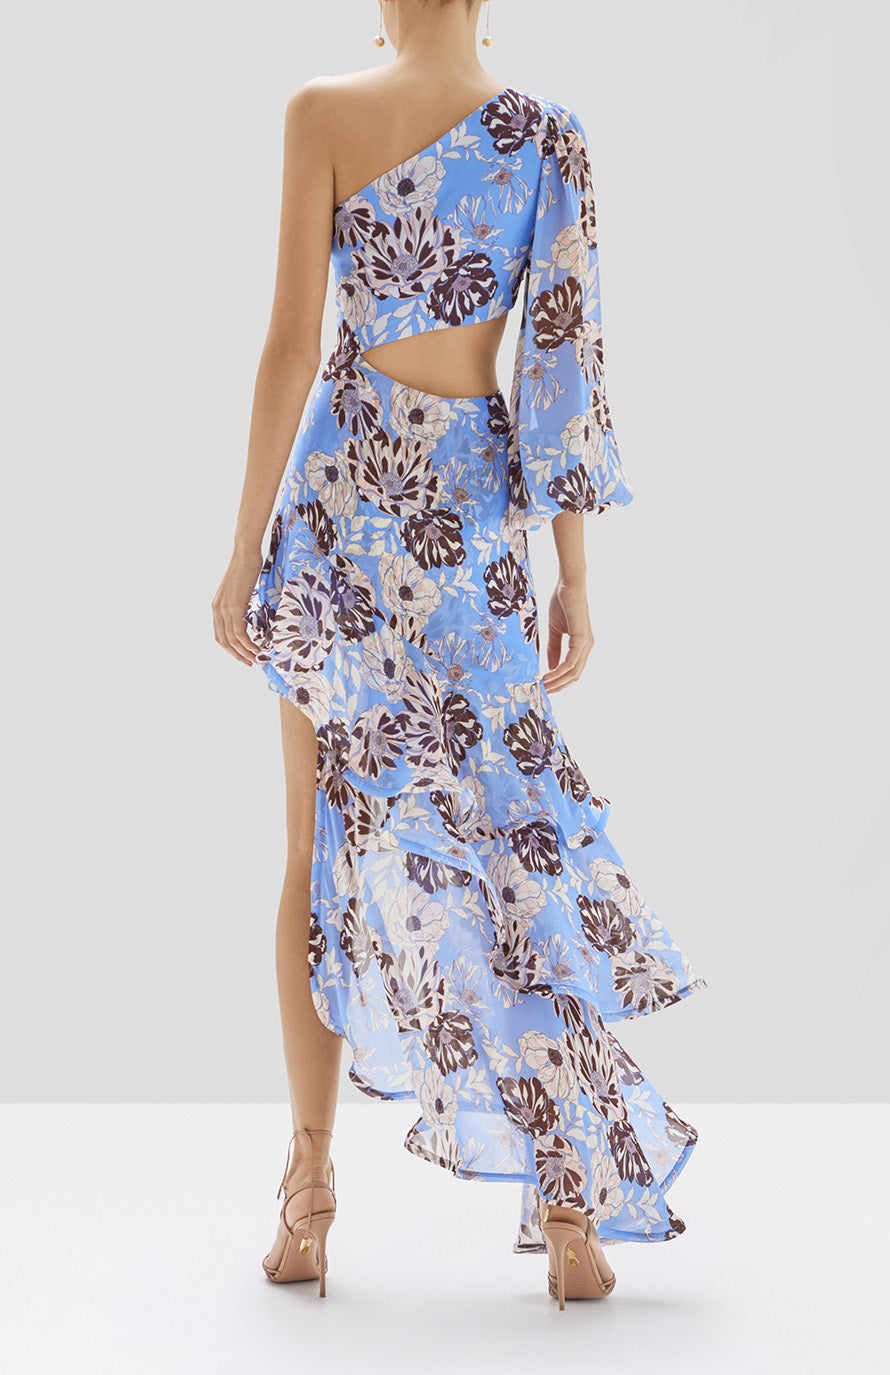 Alexis Sabetta Dress in Blue Floral from Pre Spring 2020 Collection - Rear View